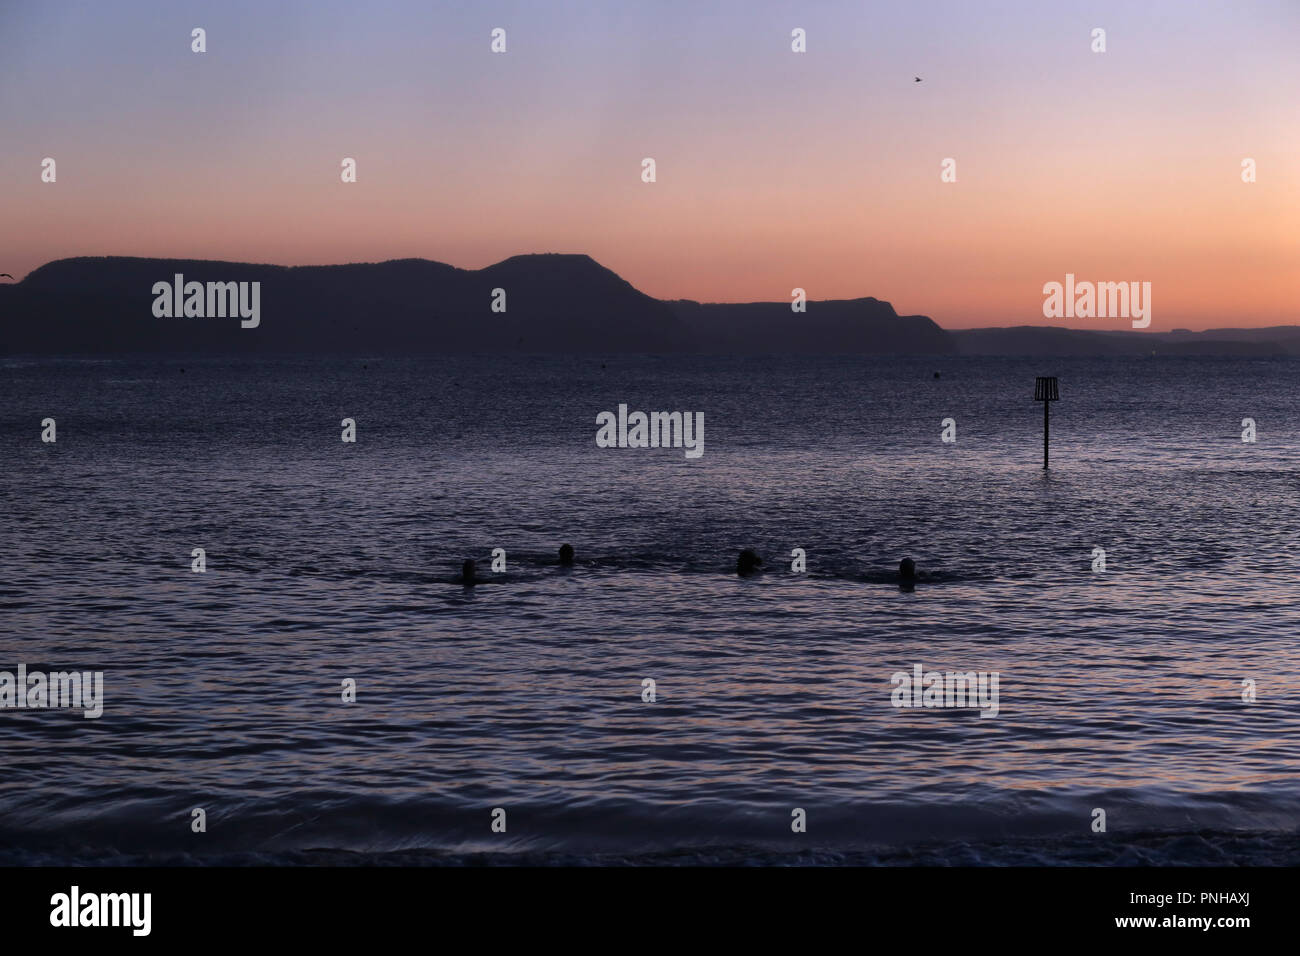 swimmers silhouetted in a winter sea at sunrise - Stock Image